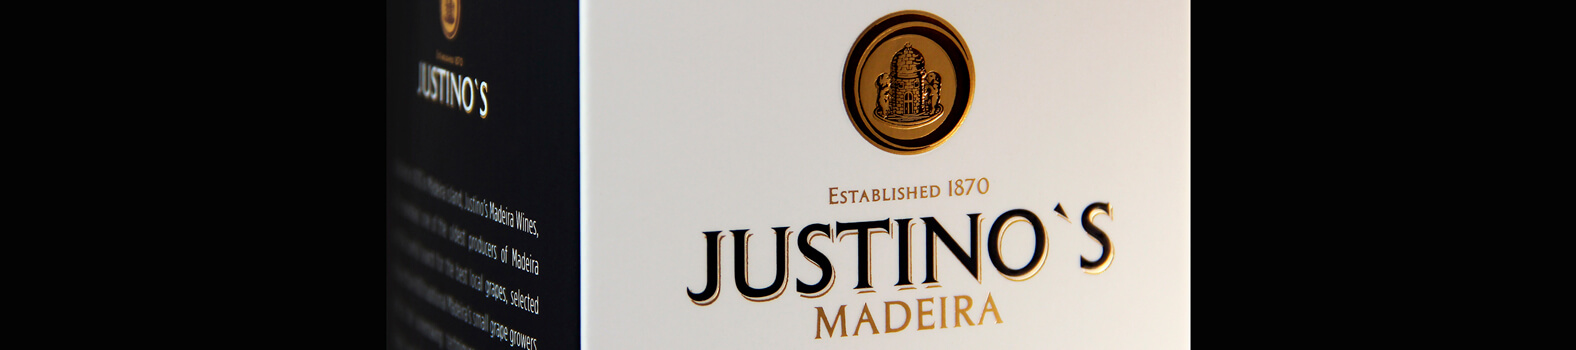 Justino's Madeira Wines renewed by Omdesign